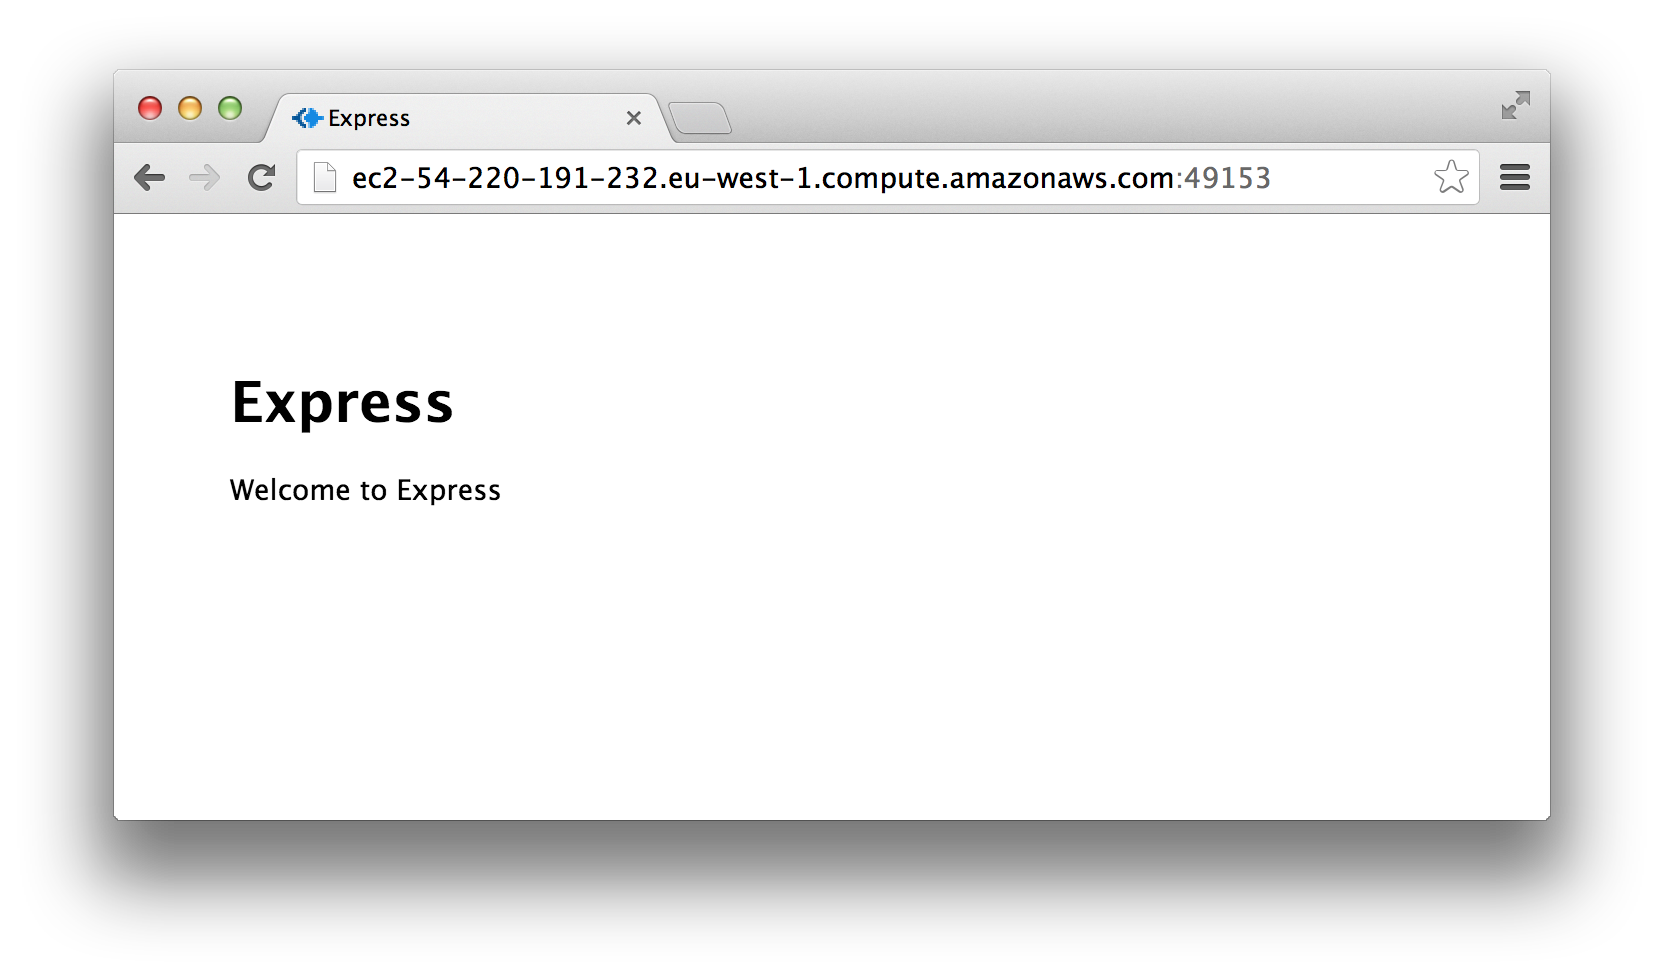 Express app running on AWS EC2 instance